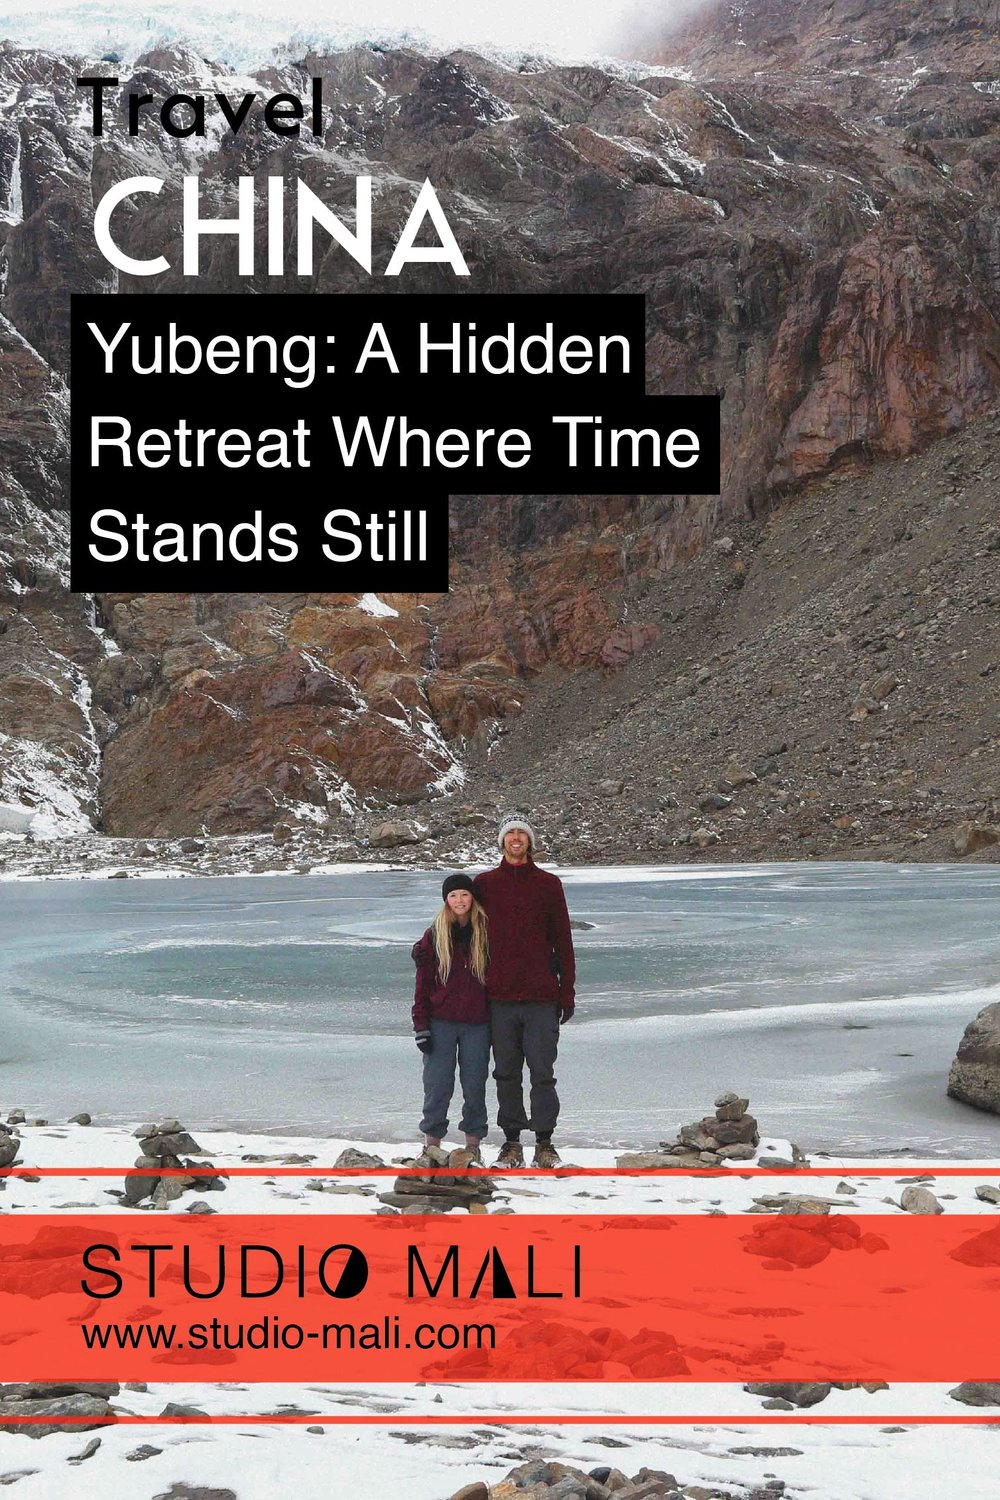 China - Yubeng - A Hidden Retreat Where Time Stands Still, by Studio Mali.jpg